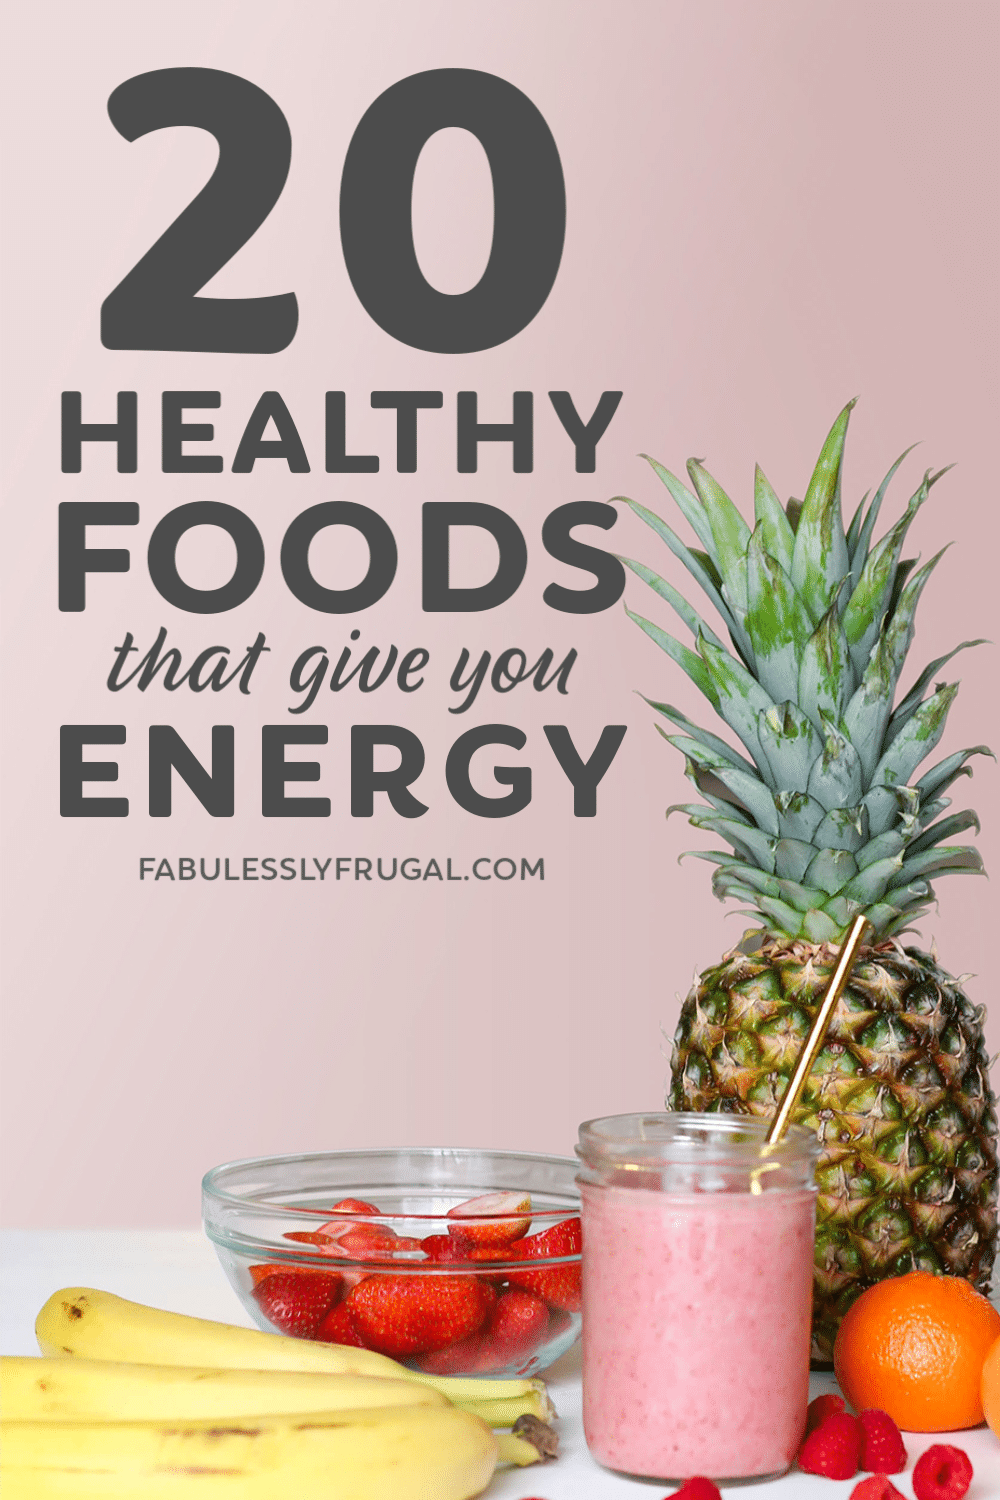 Best food to give you energy